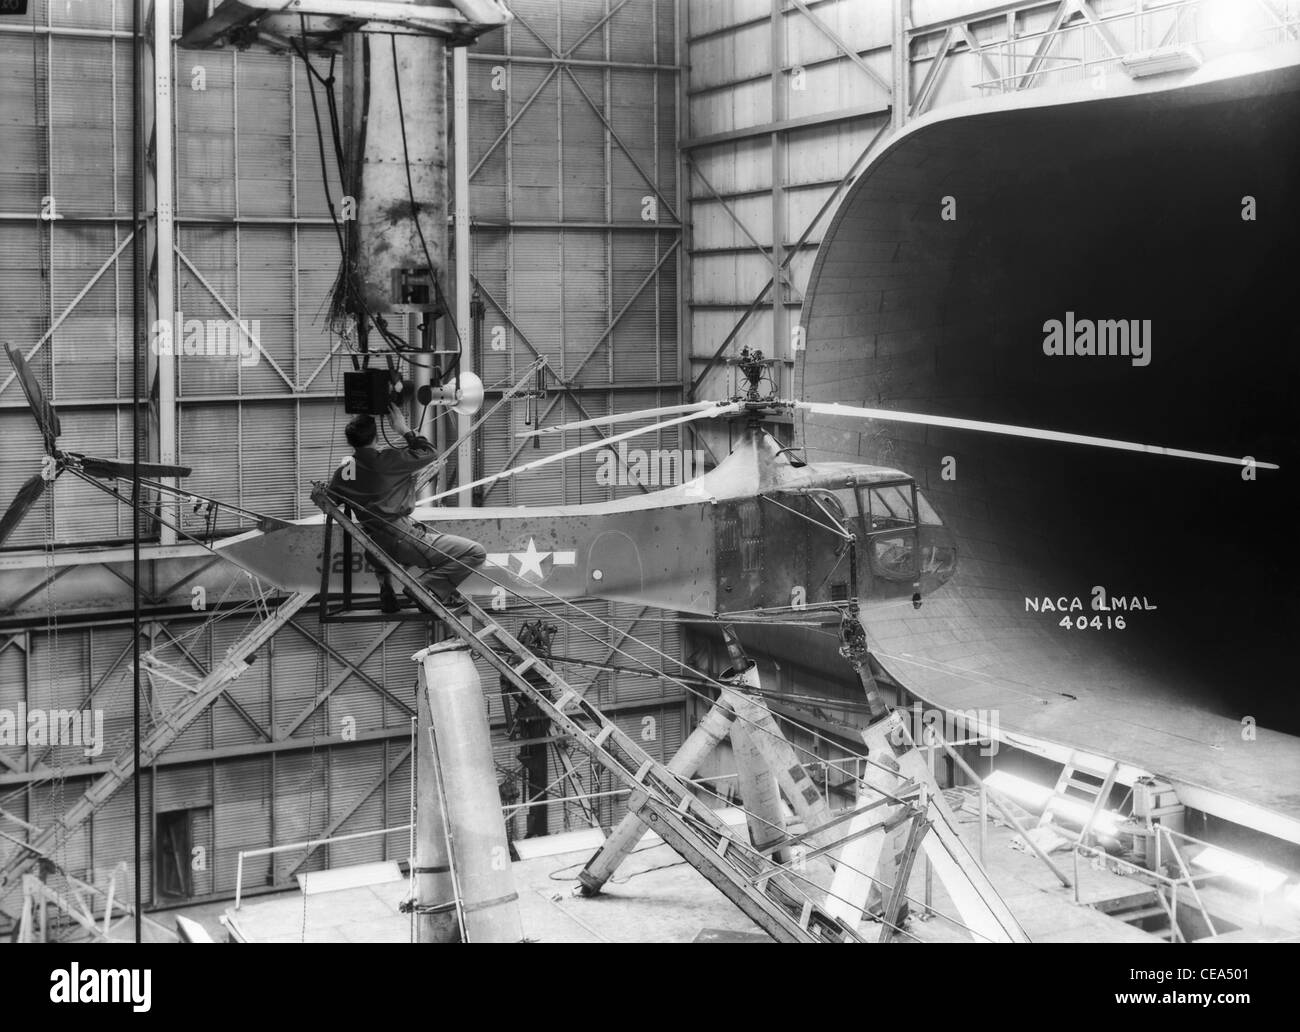 Sikorsky Helicopter In this image taken in 1944, one of Langley Research Center's Sikorsky YR-4B/HNS-1 helicopters - Stock Image